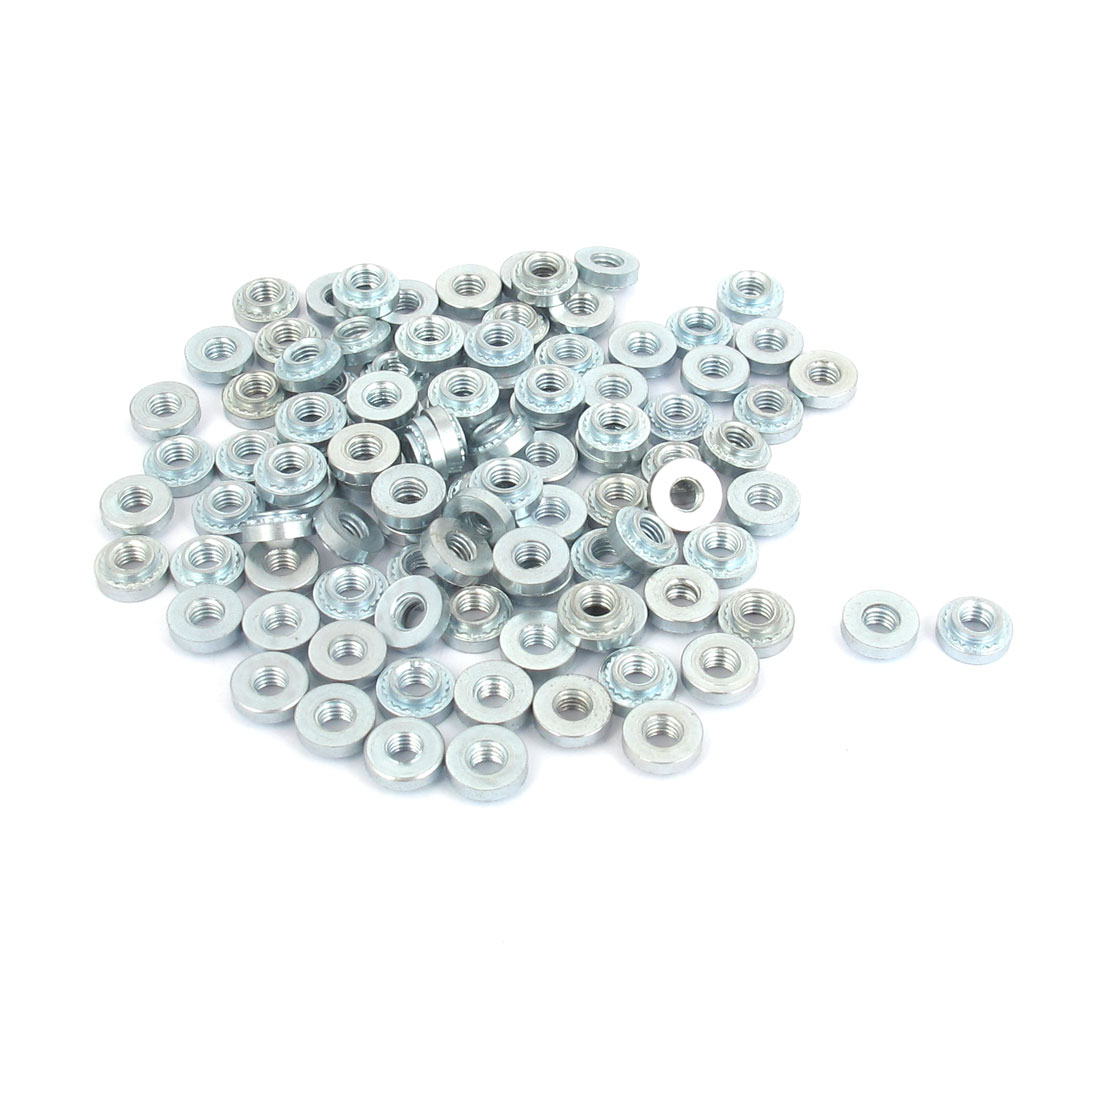 M3 Zinc Plated Self Clinching Rivet Nut Fastener 100pcs for 2mm Thin Plates